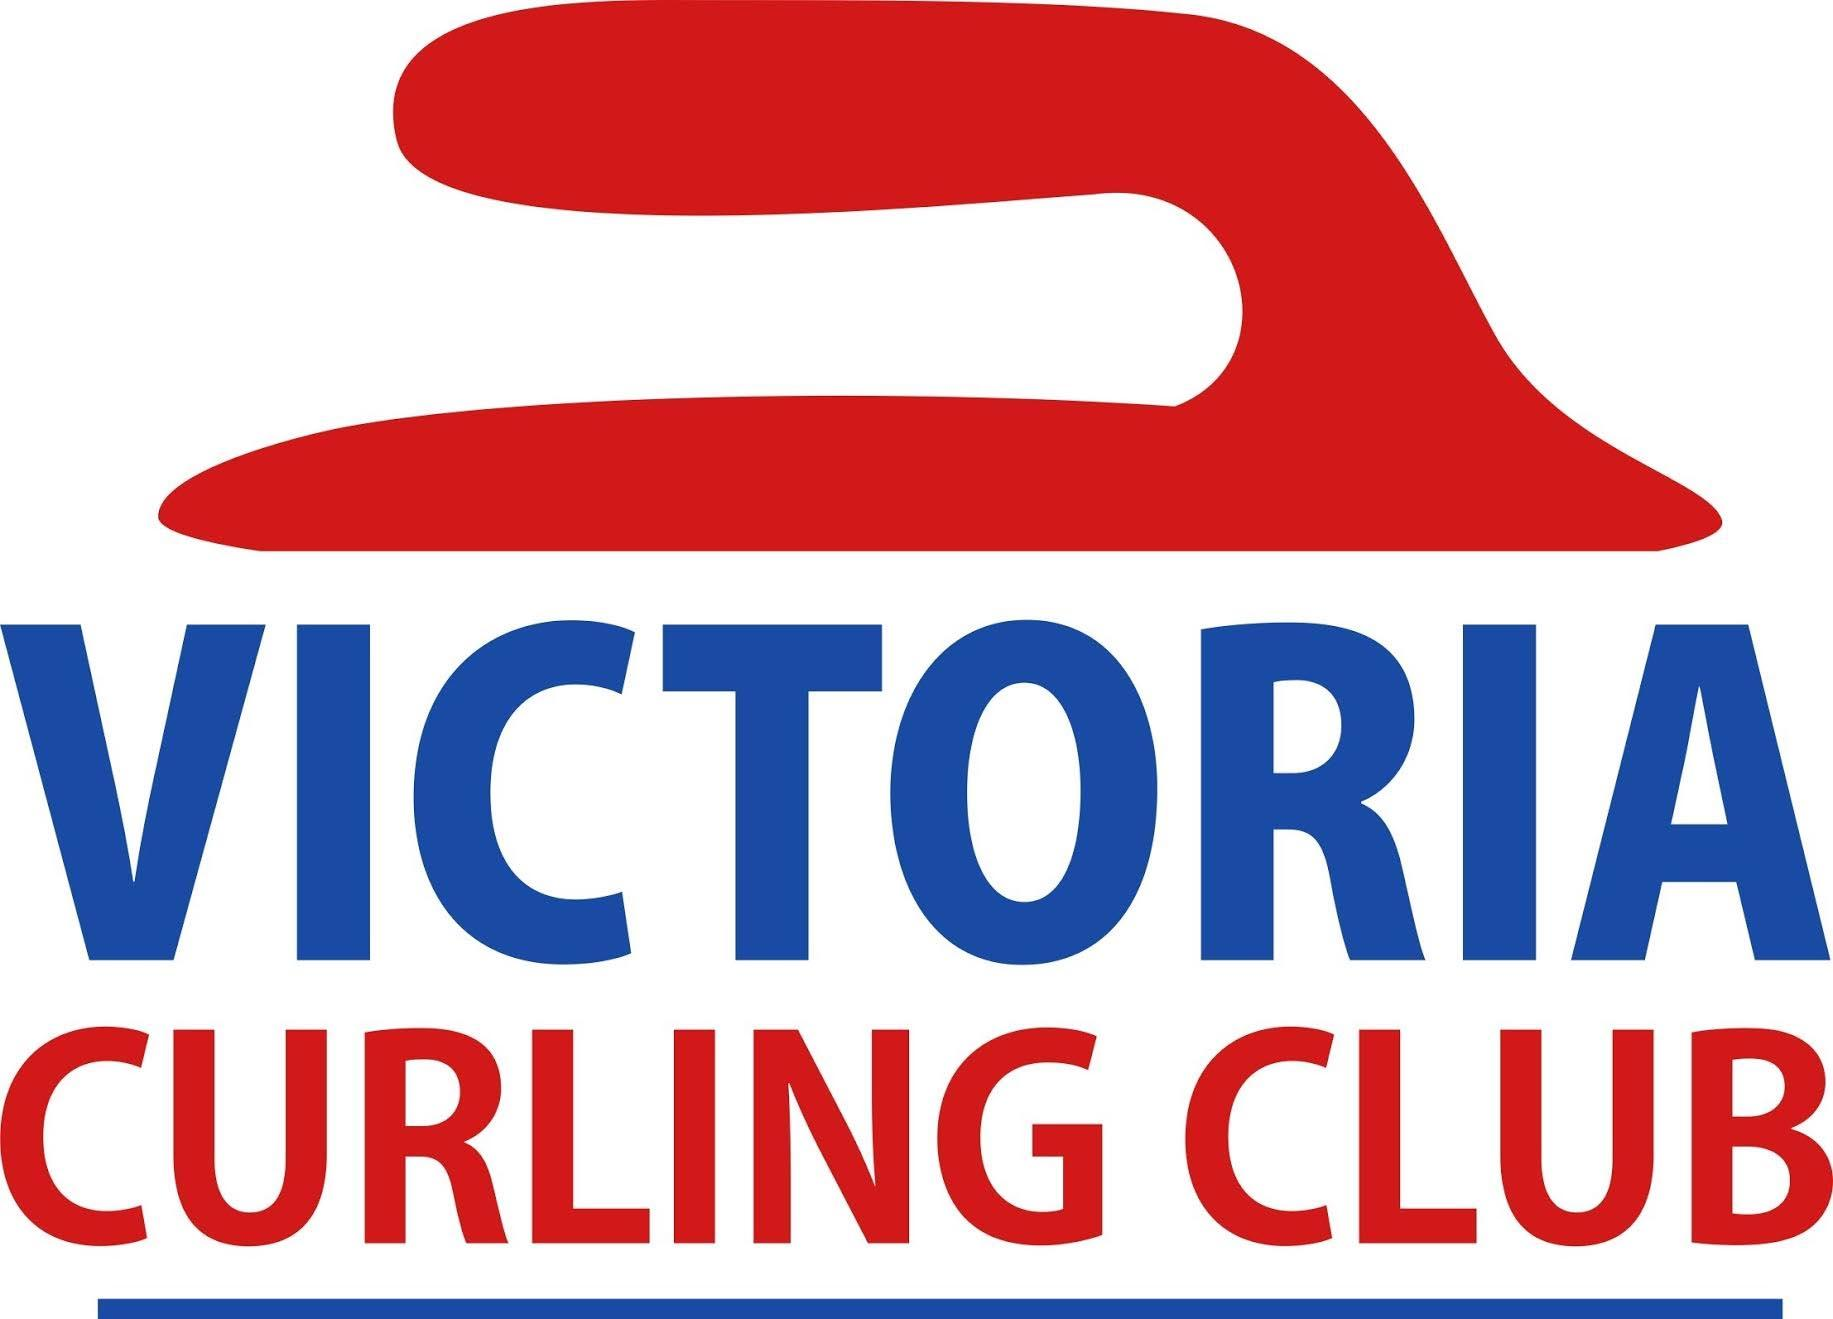 victoria curling club